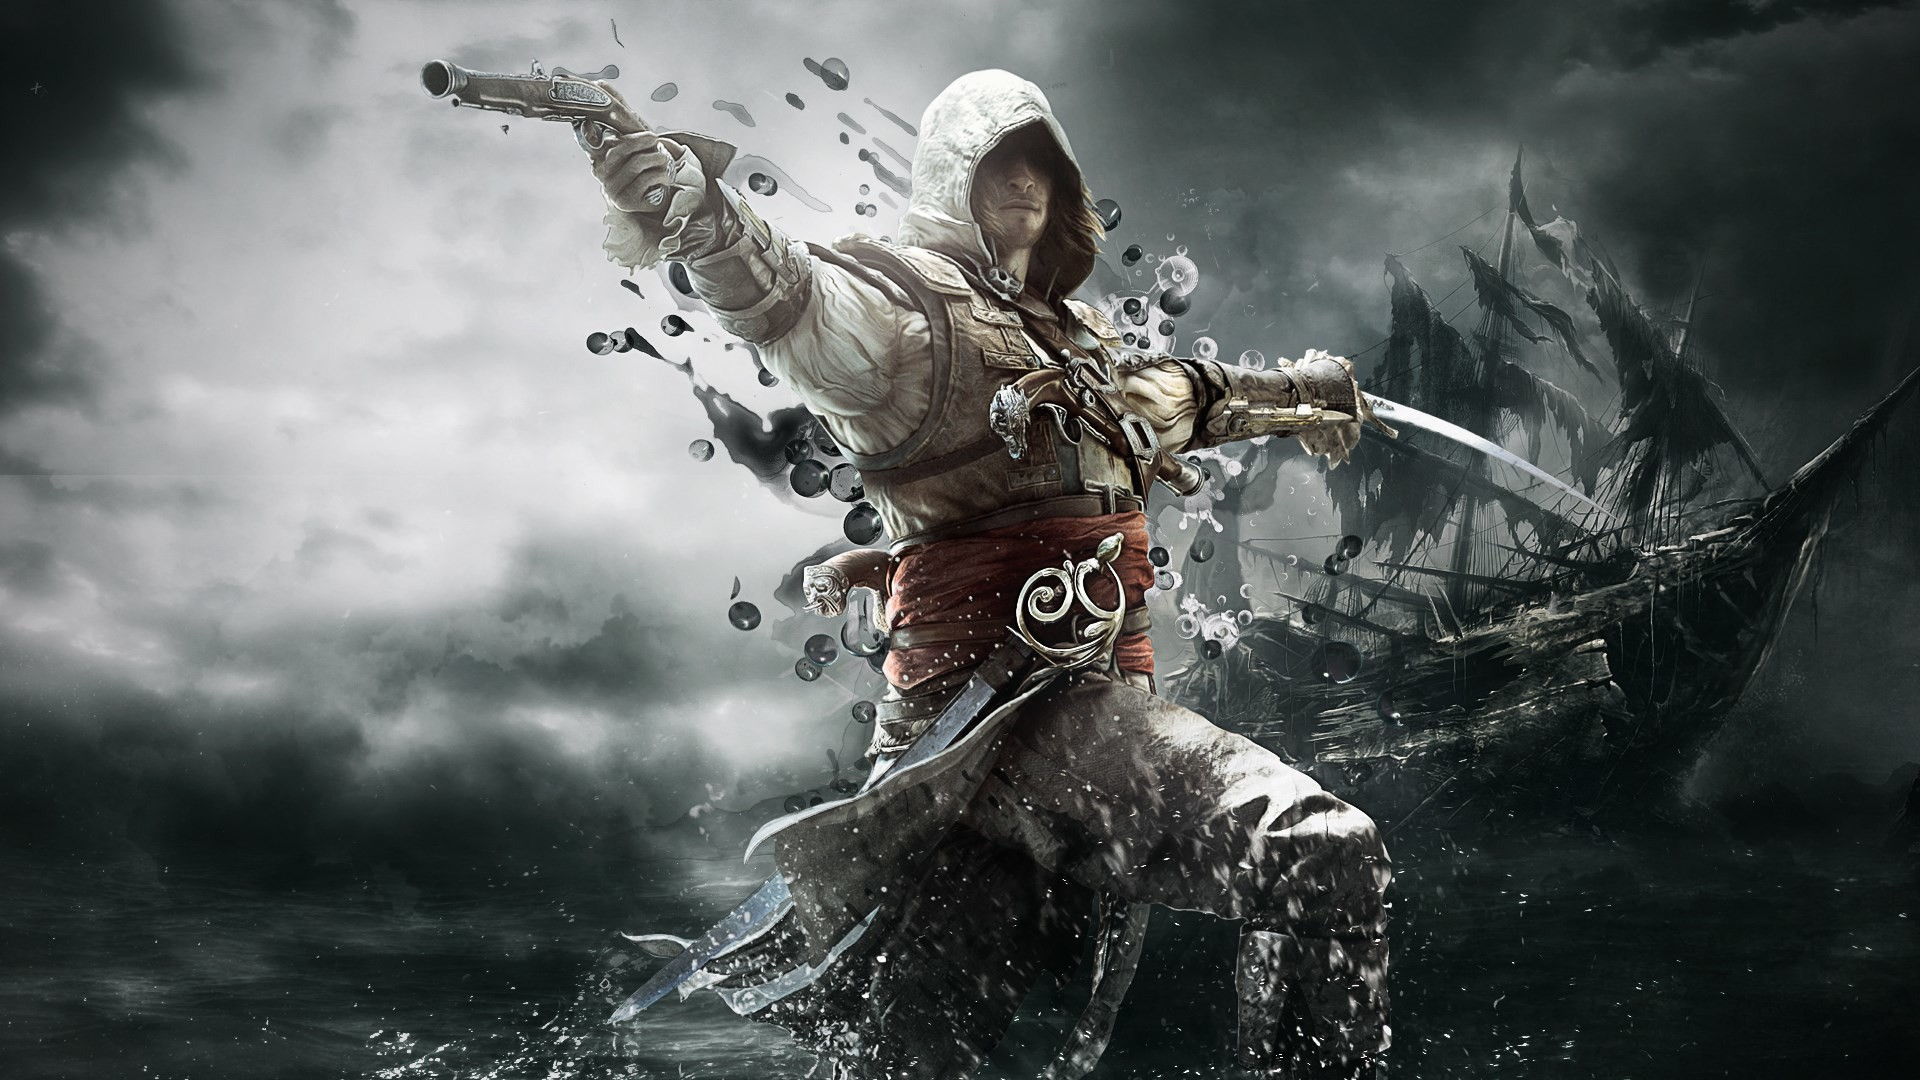 1920x1080 assassins creed wallpaper 1080p